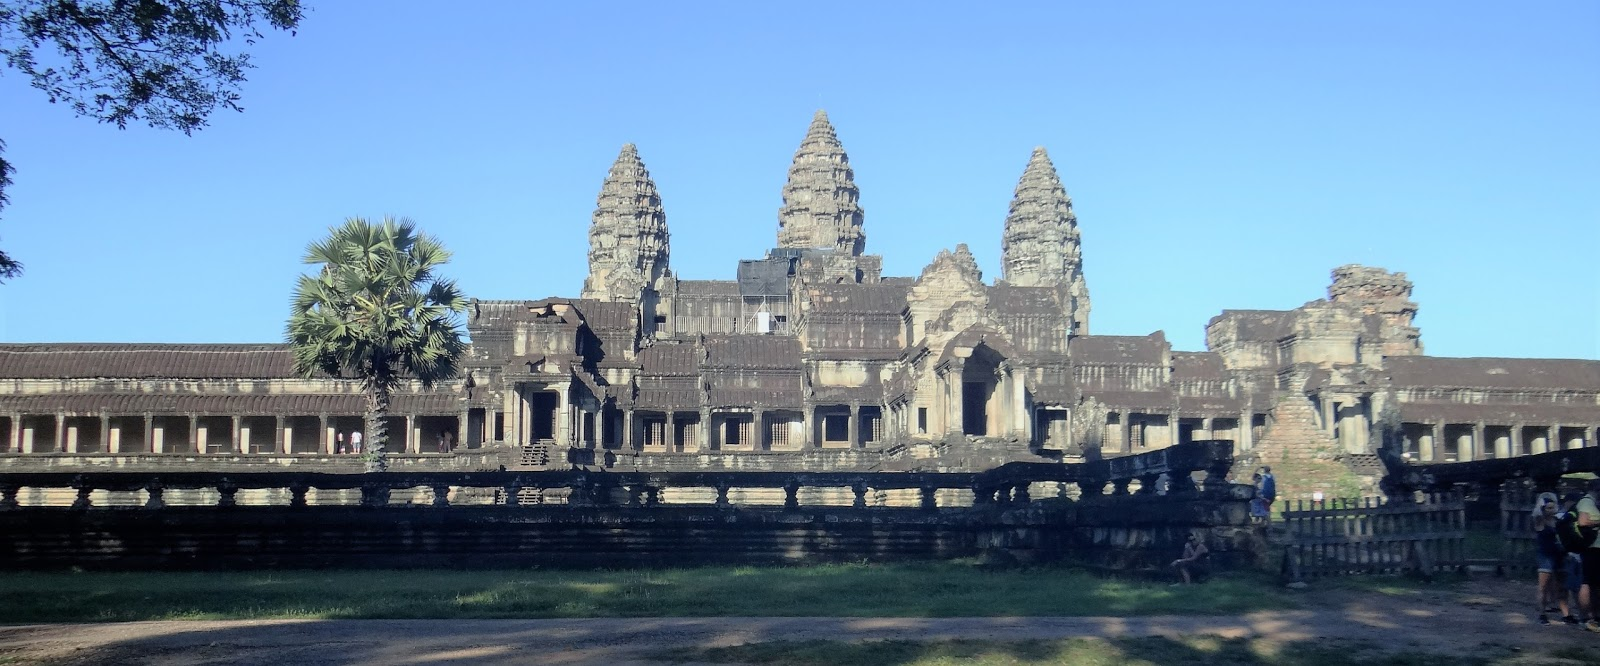 sunshinecoastbirds: Cambodias Siem Reap and Angkor Wat